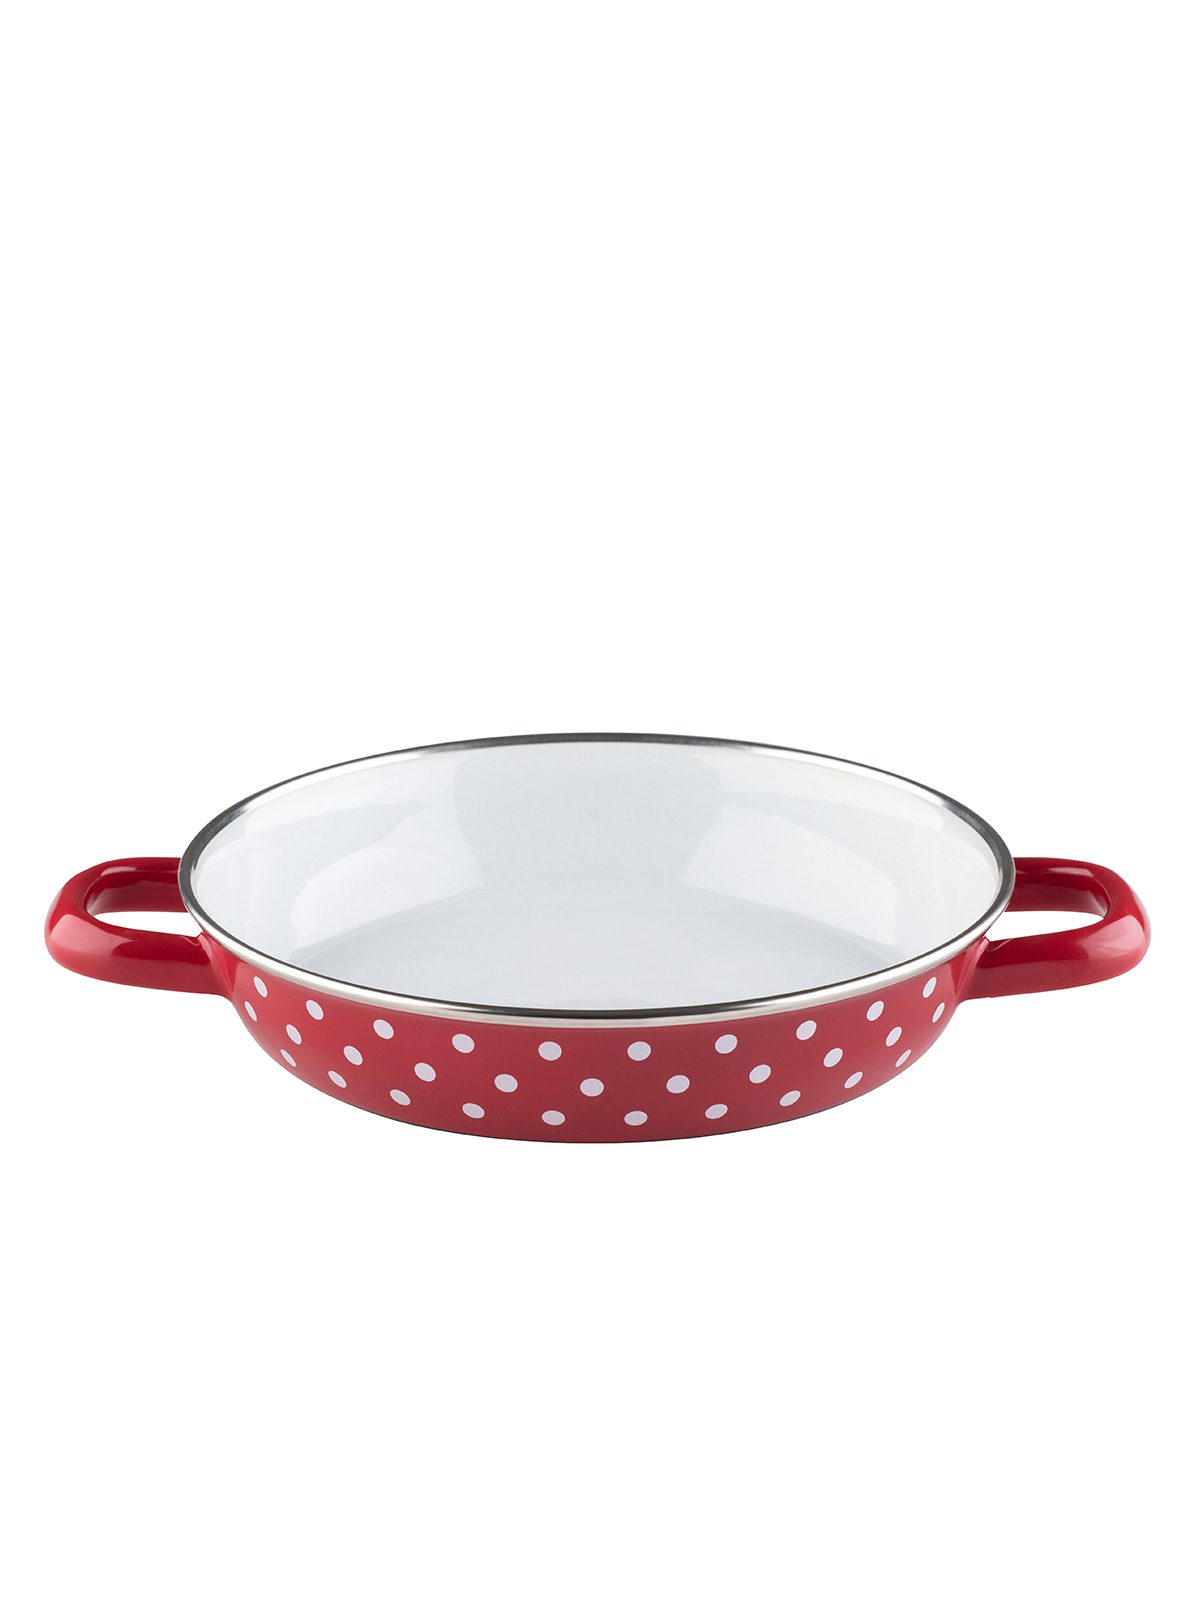 egg casserole red with white points 20 cm (0044-77)